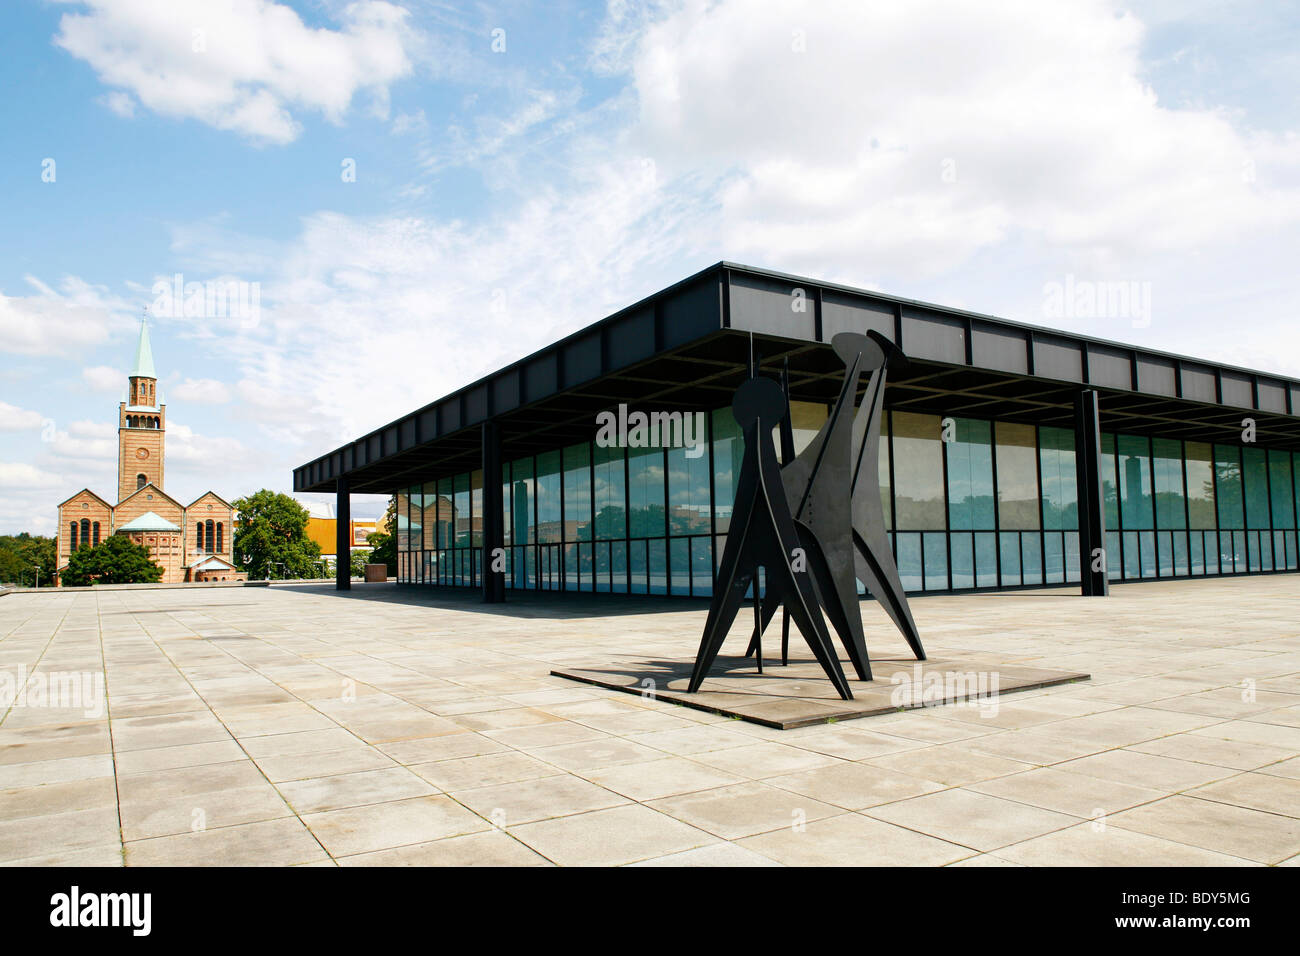 Mies Van Der Rohe Berlin The New National Gallery At The Kulturforum Berlin, Architect Ludwig Stock Photo - Alamy